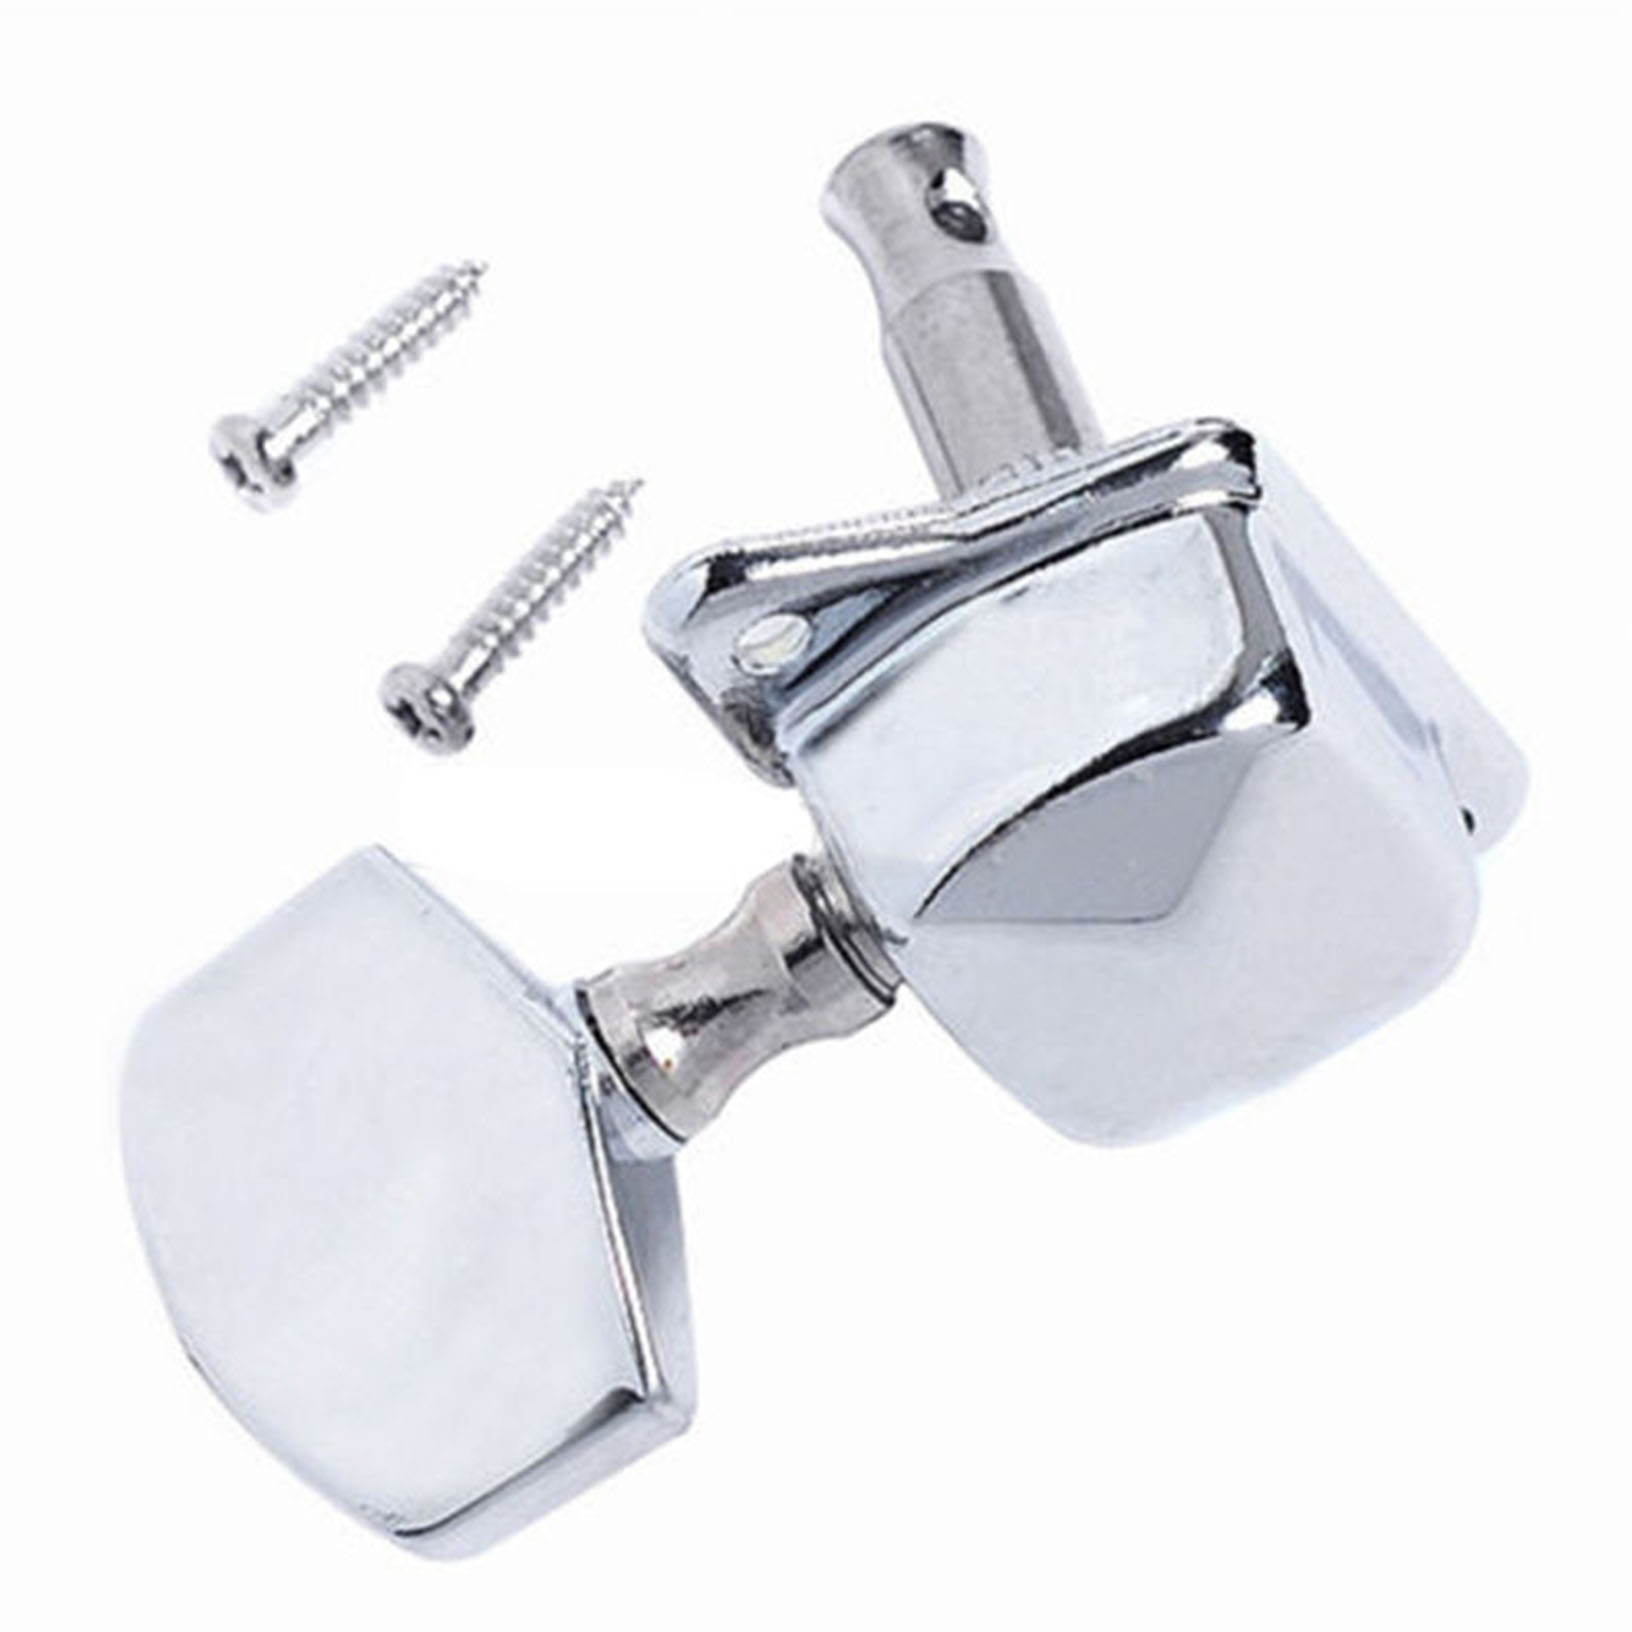 acoustic guitar string semiclosed tuning pegs tuners machine heads 3x3 chrome 634458500265 ebay. Black Bedroom Furniture Sets. Home Design Ideas